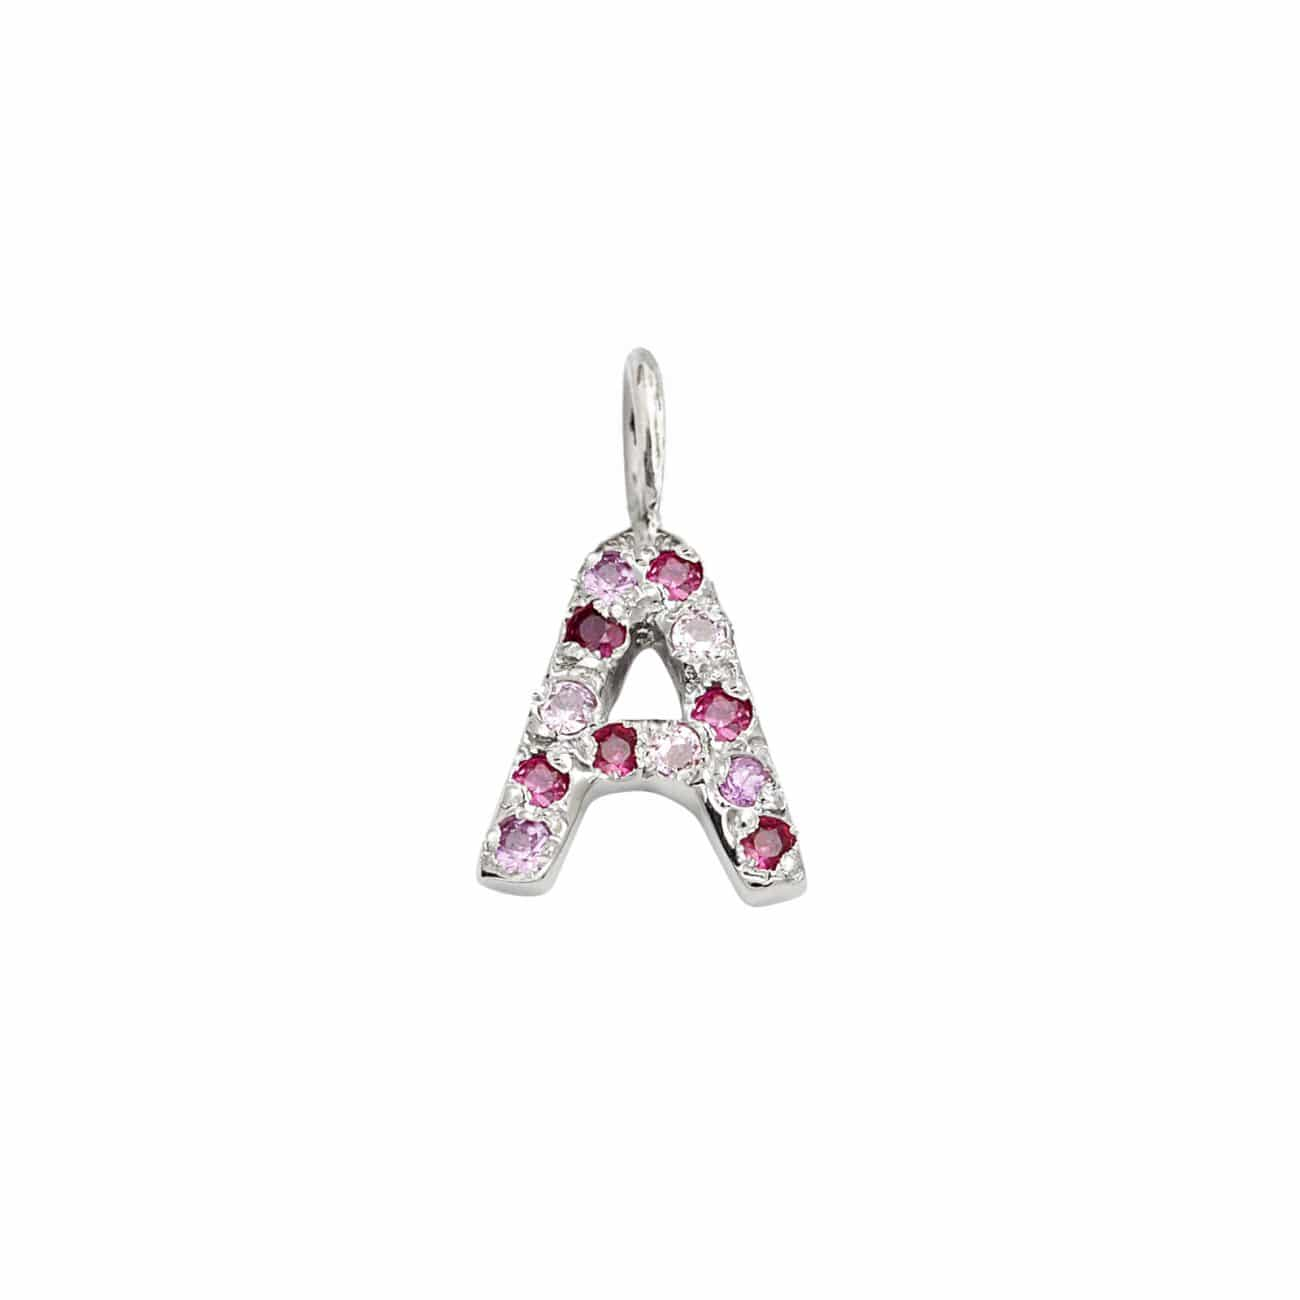 Letter Charm Pendant with Pink Hue Gems in 14k White Gold